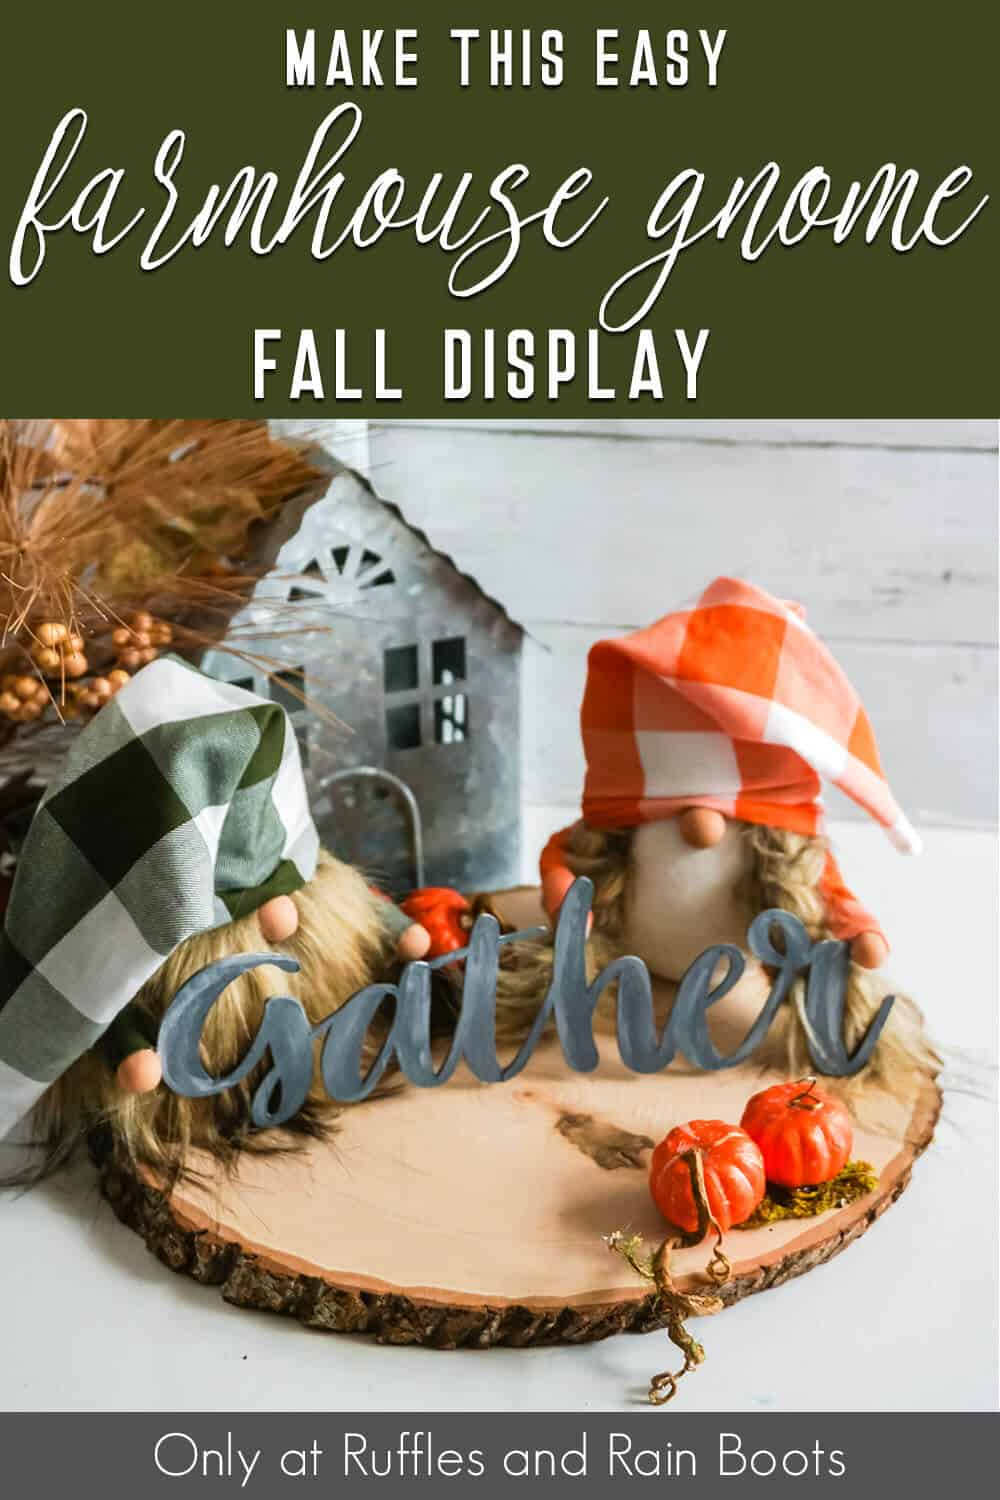 fall gnome pattern for sock gnomes with text which reads make this easy farmhouse gnome fall display